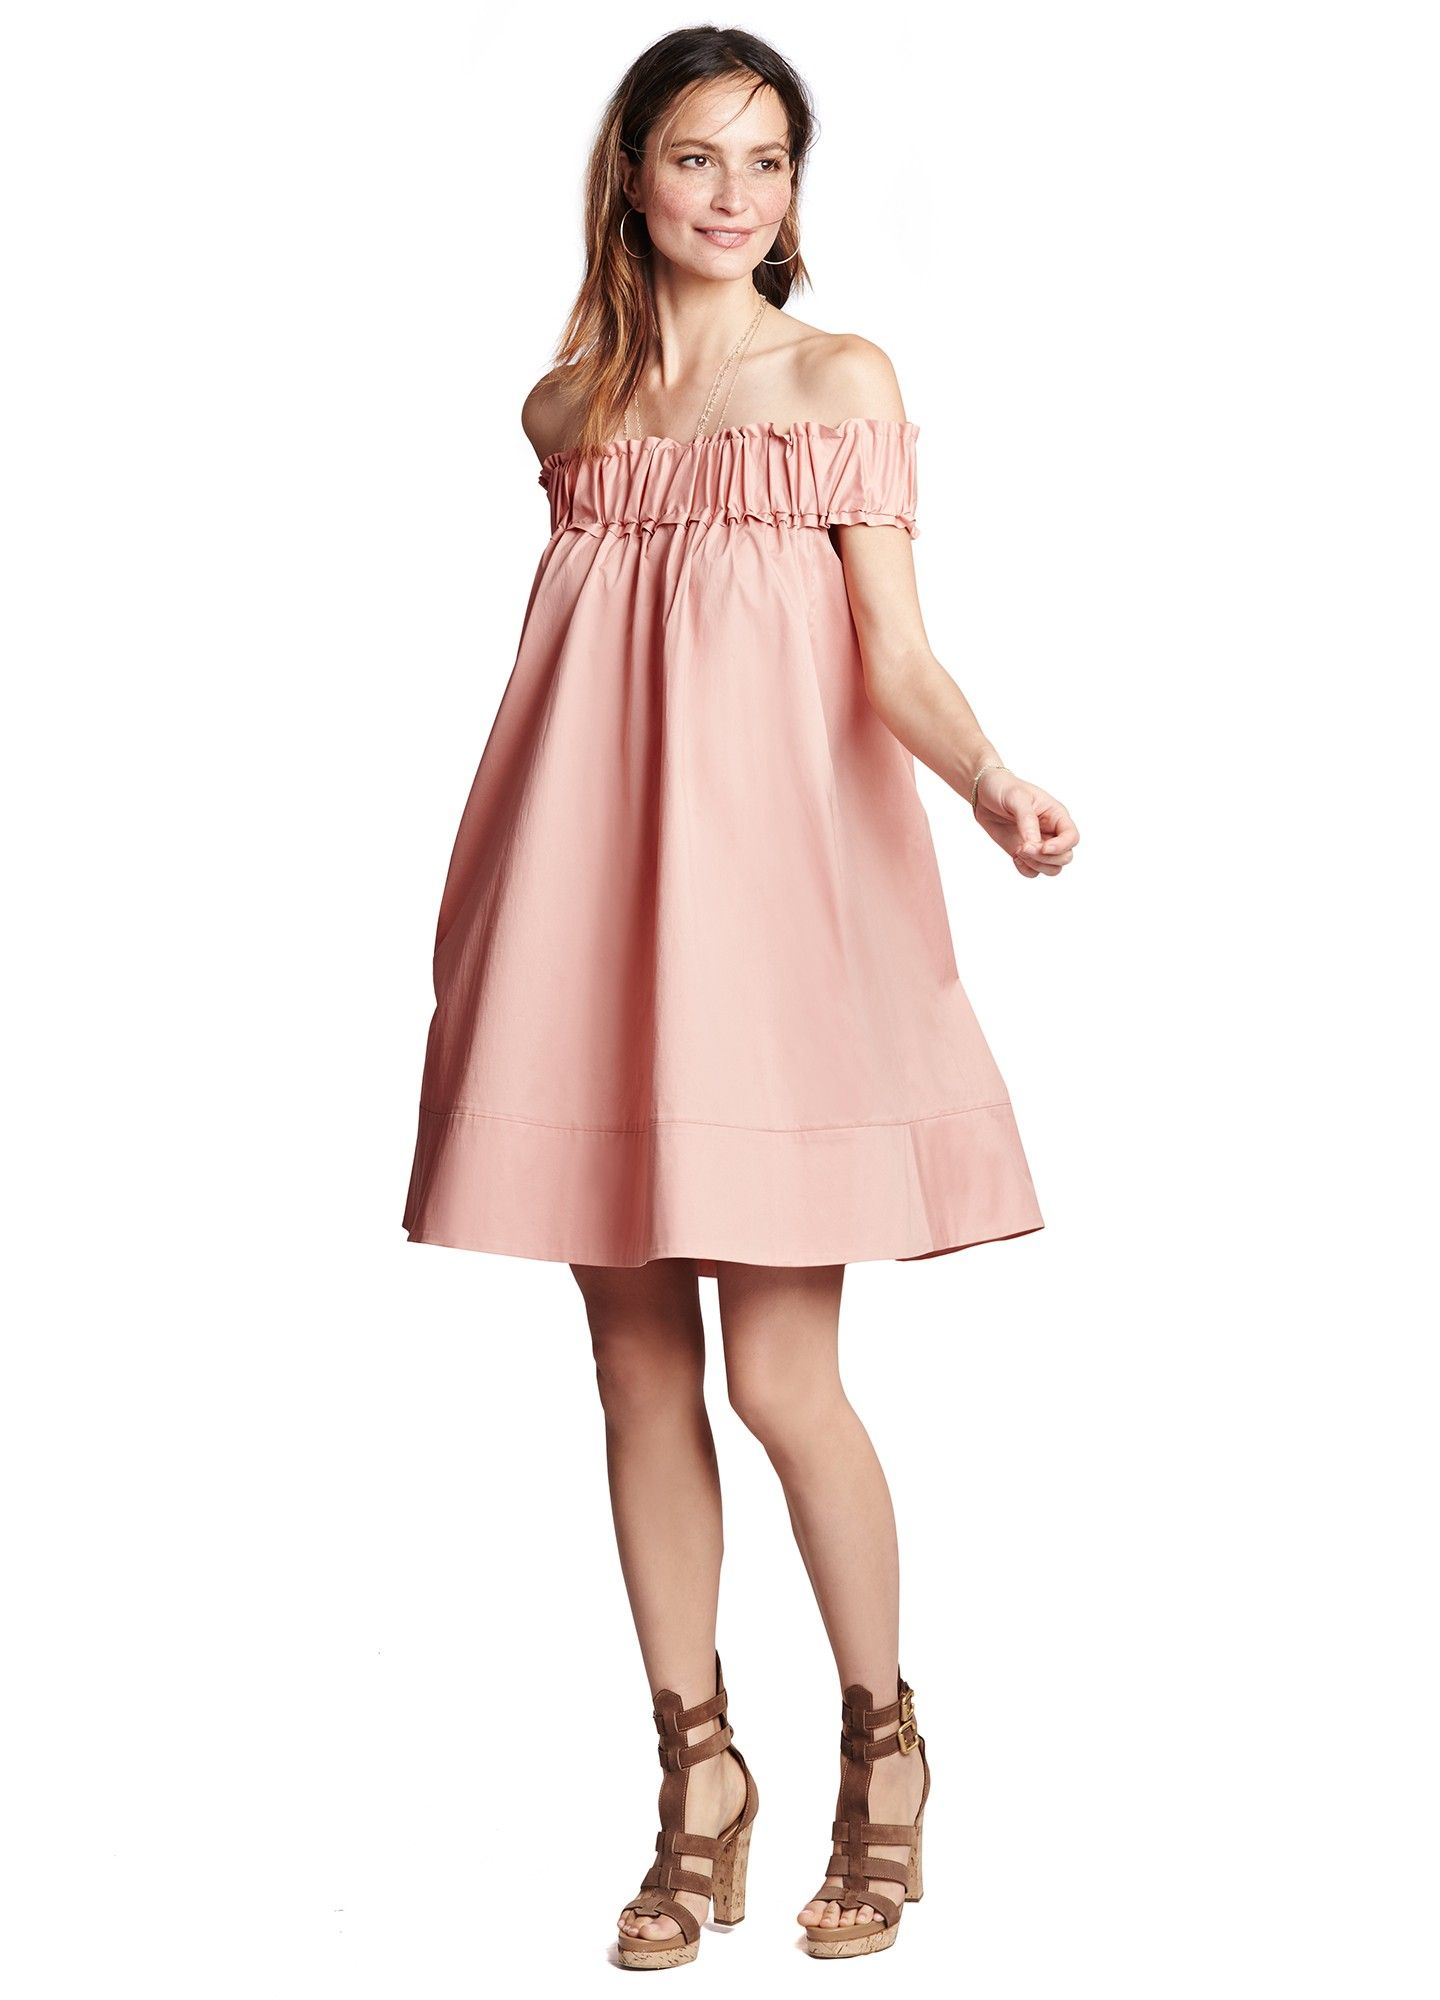 THE AUDREY DRESS - SPRING/SUMMER 2016 - clothing